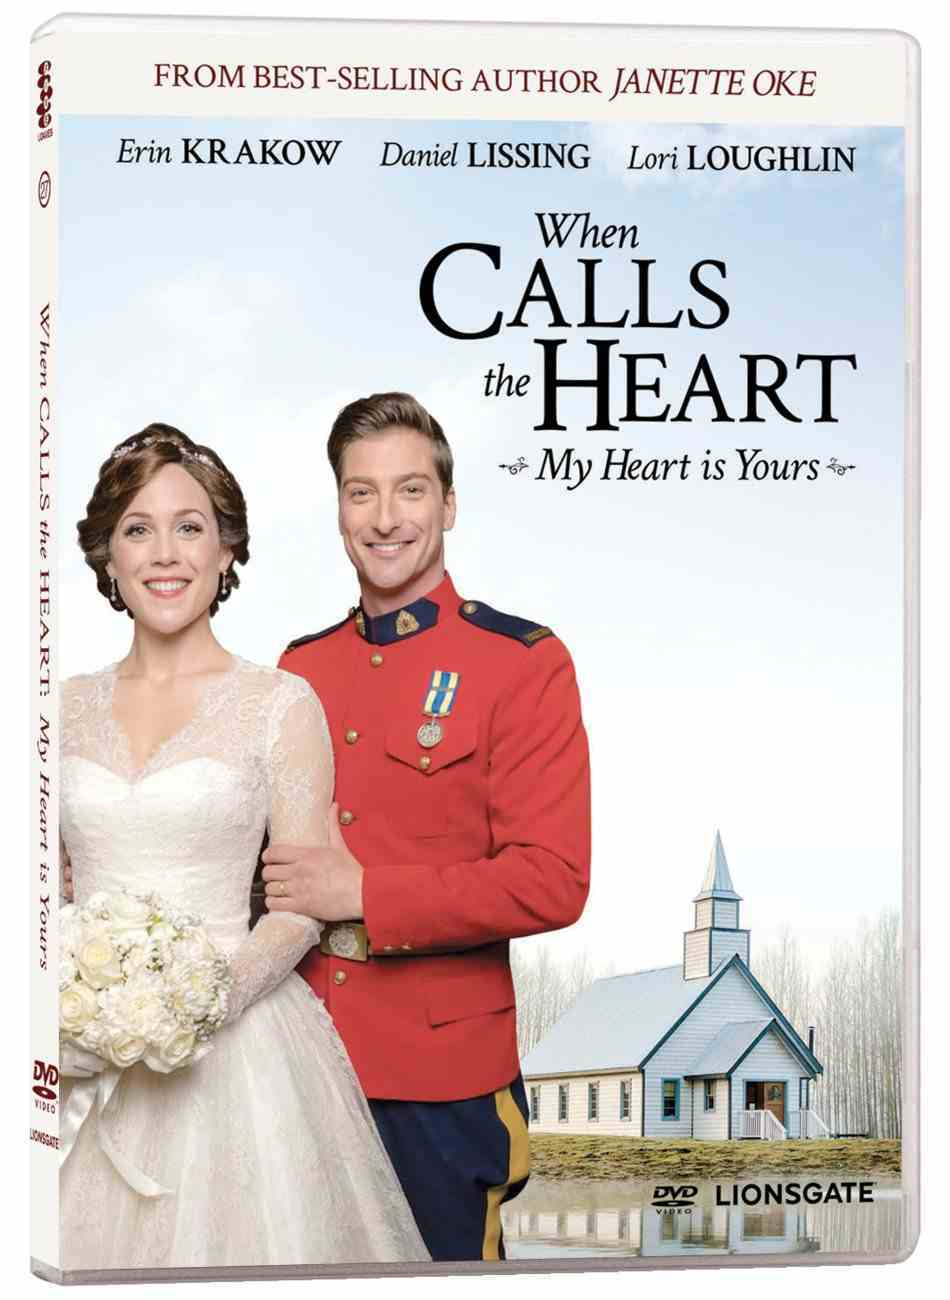 SCR DVD When Calls the Heart #27: My Heart is Yours (Screening Licence) Digital Licence